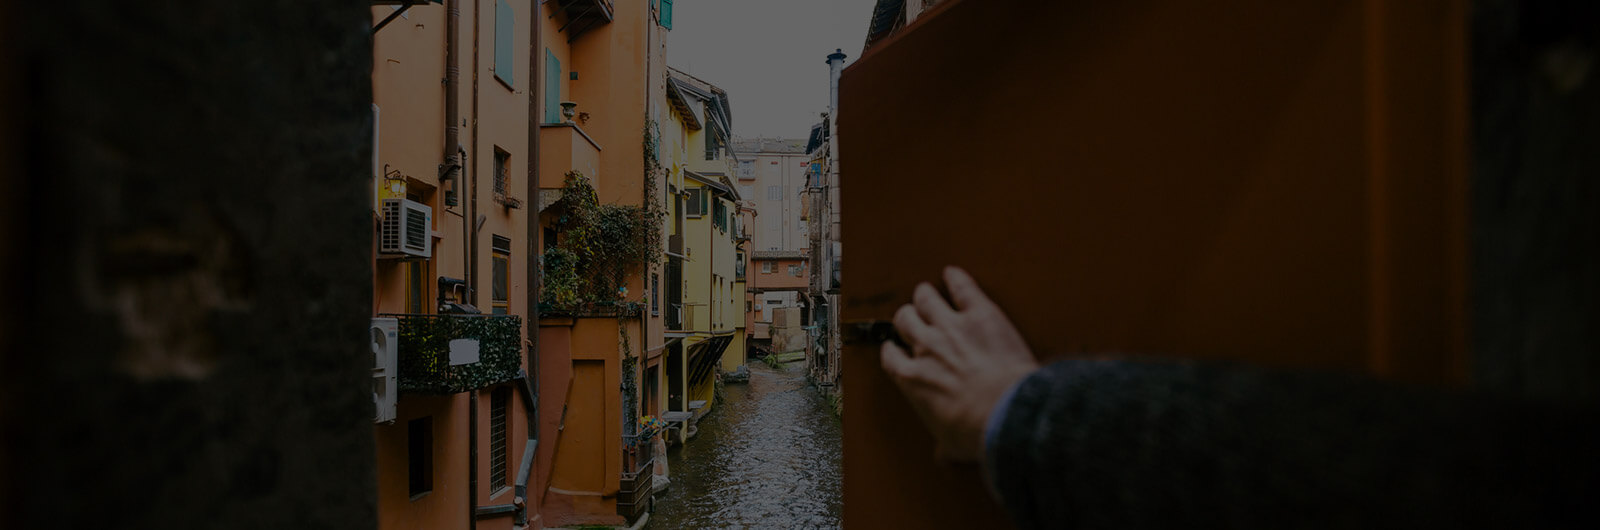 Man opening window and looking at the canal